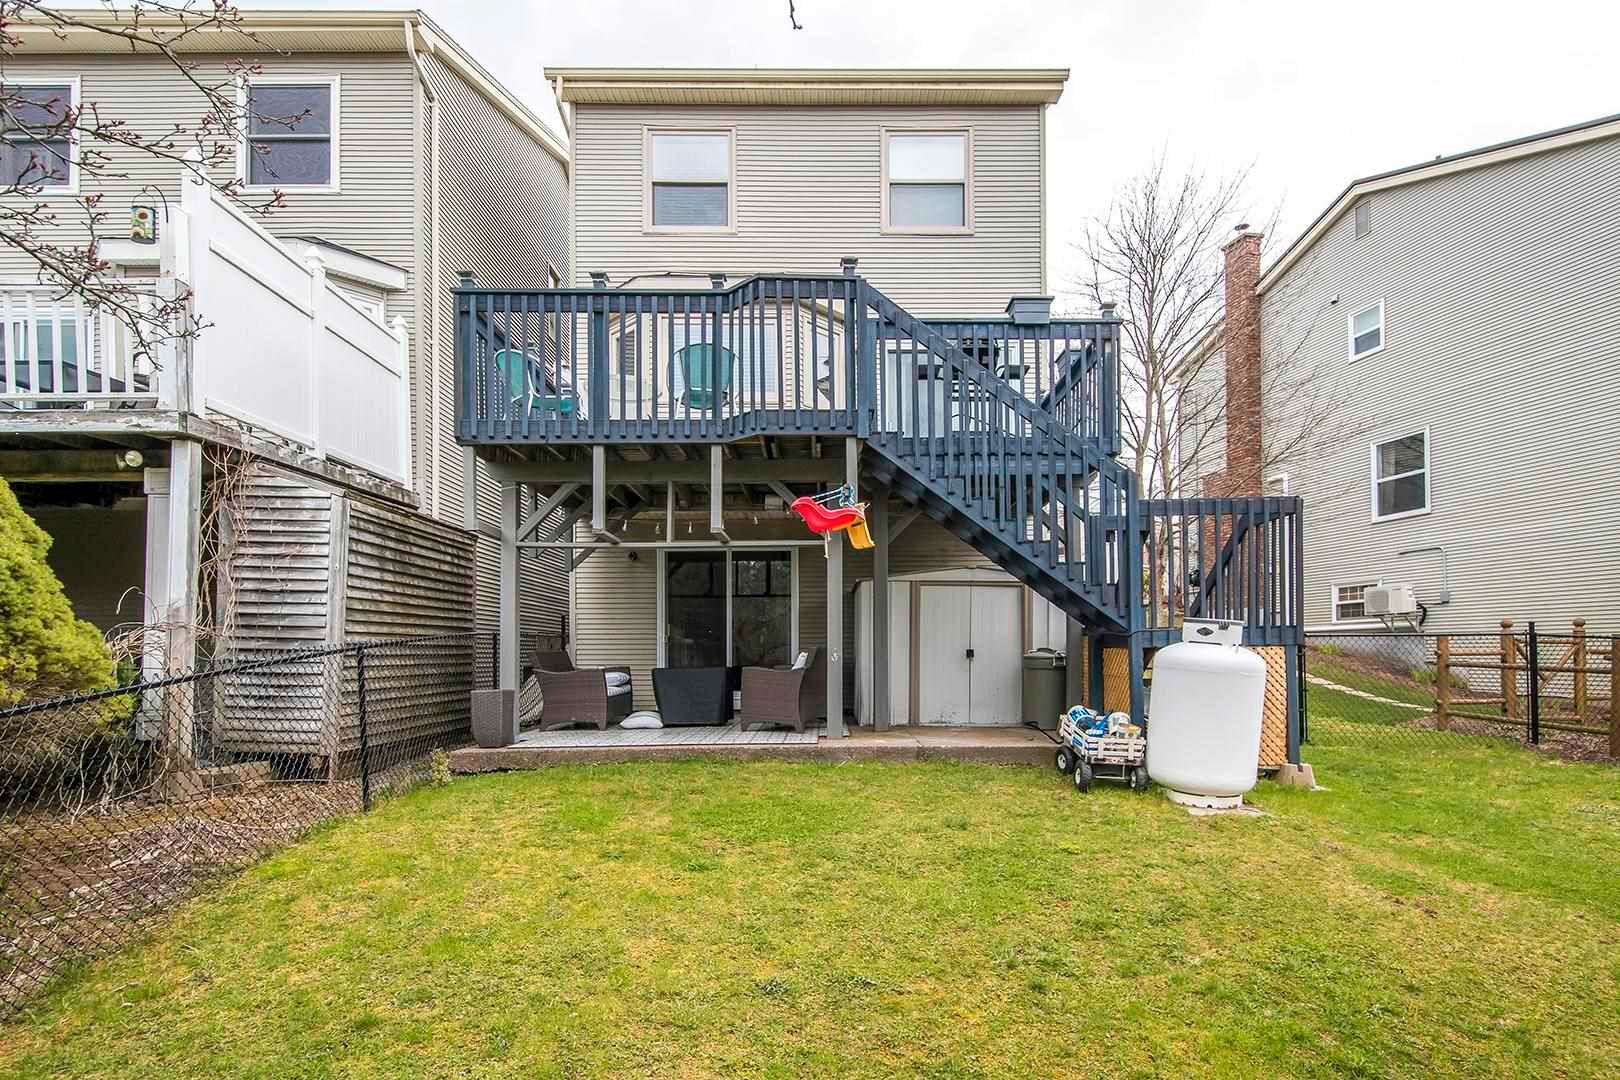 Photo 30: Photos: 64 Roy Crescent in Bedford: 20-Bedford Residential for sale (Halifax-Dartmouth)  : MLS®# 202110846